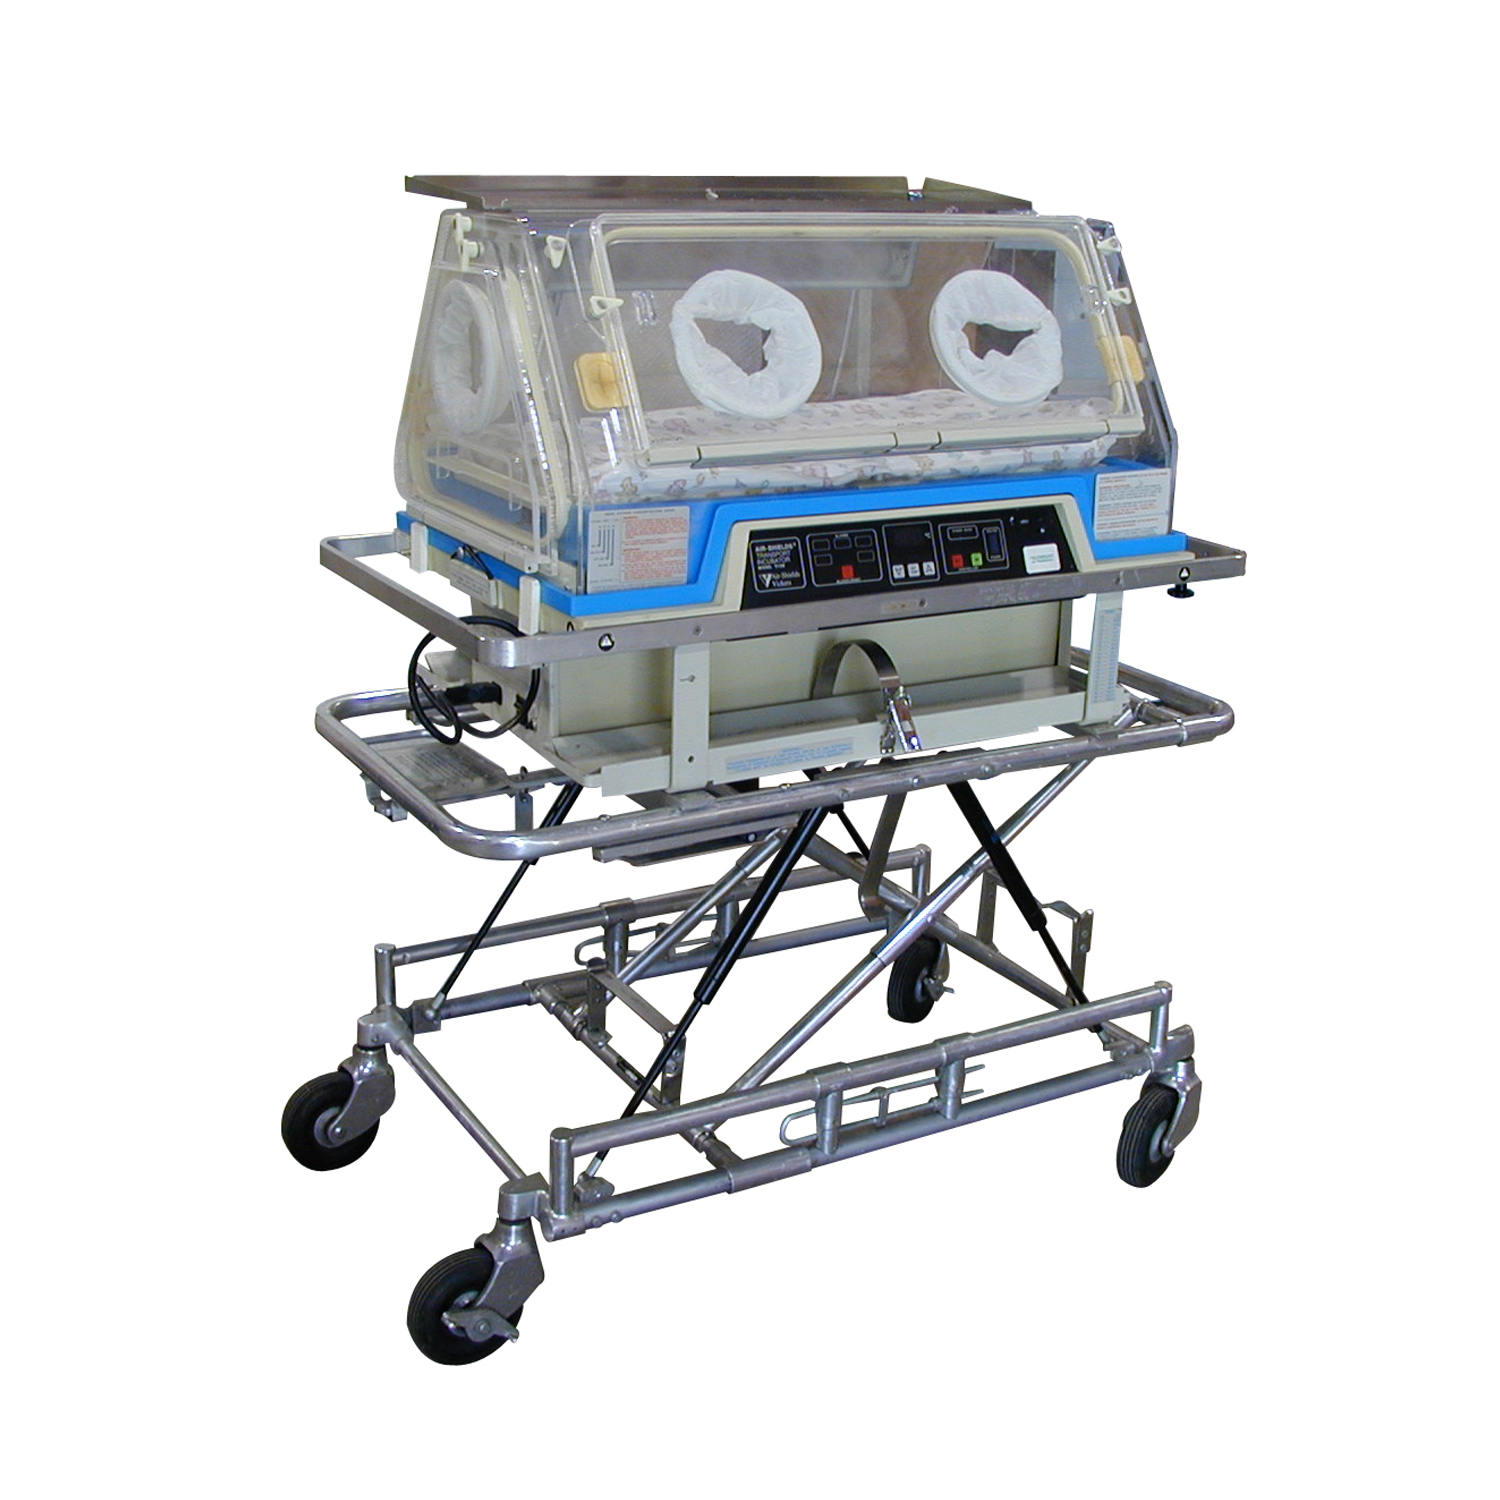 Air-Shields TI-100 Transport Incubator